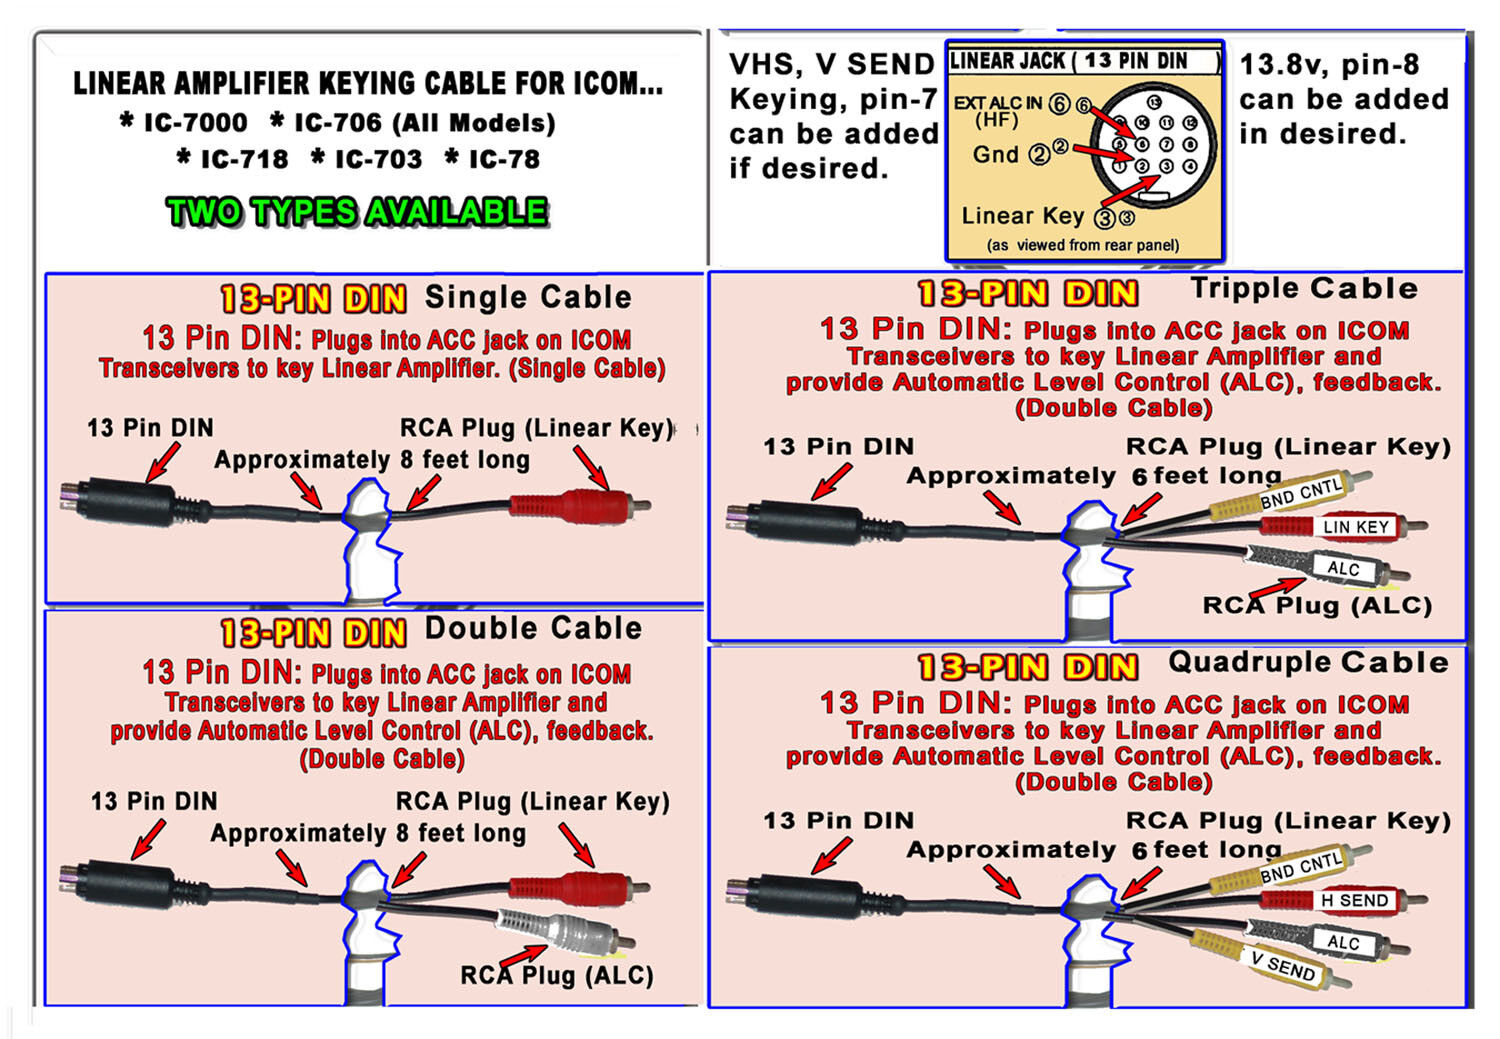 13 Pin Din Cable Most Icom Keying Alc Ic 9100 7100 706 718 Wiring 3 Wire Mini Jack These Are Many Of The Cables I Have Available Deciding Which To Order Can Sometimes Be Quite Difficult If You Know Type Transceiver